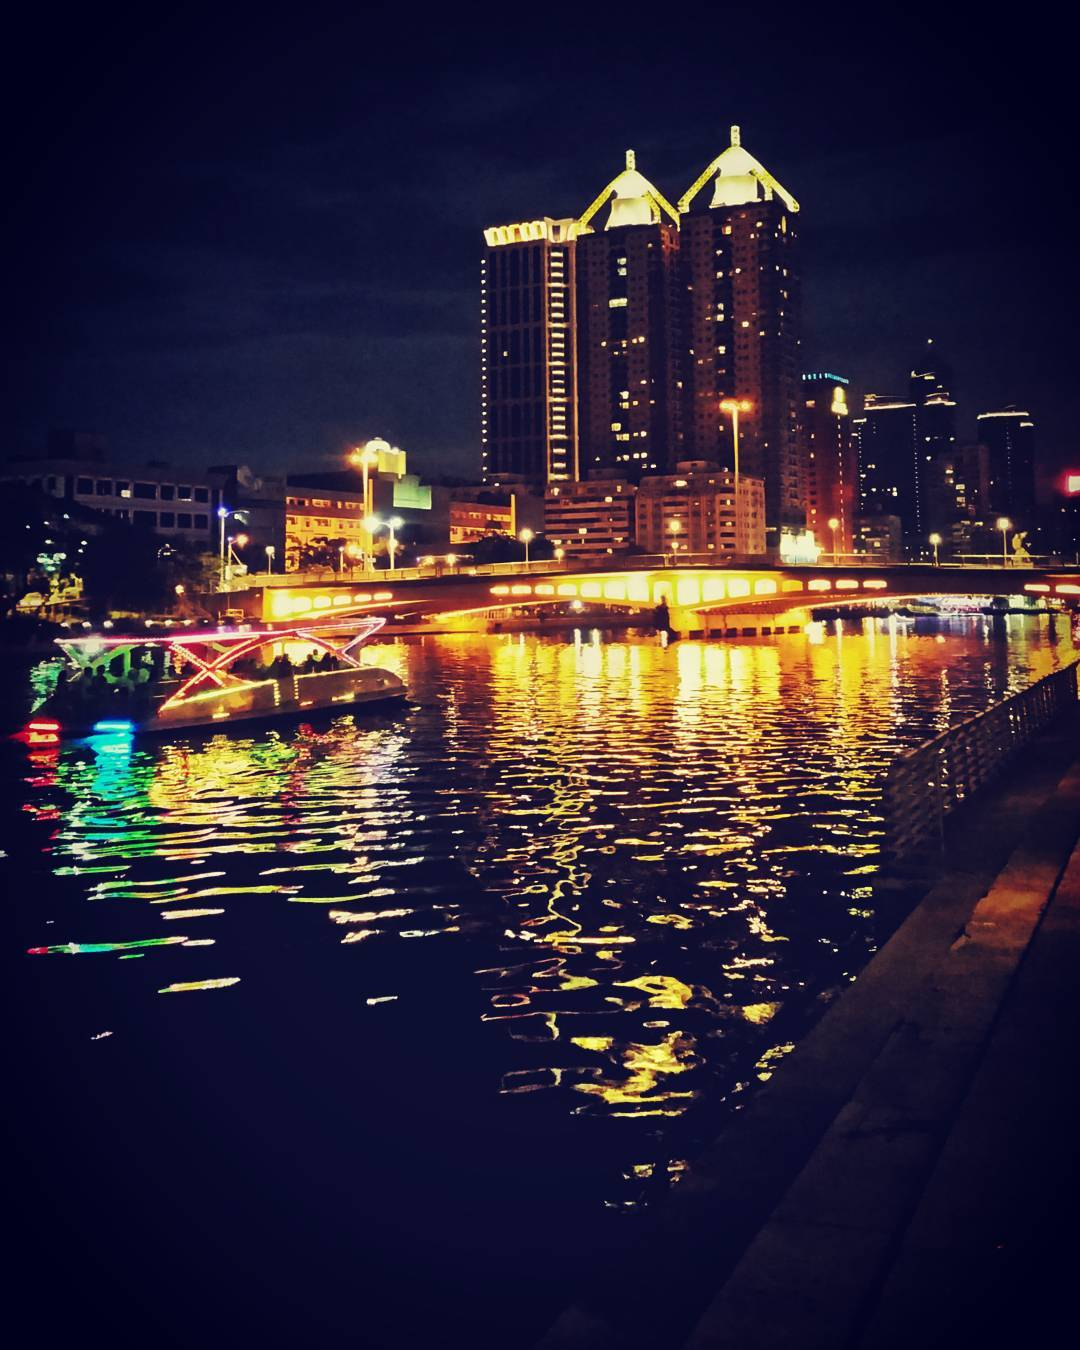 Love River at night, Kaohsiung, Taiwan